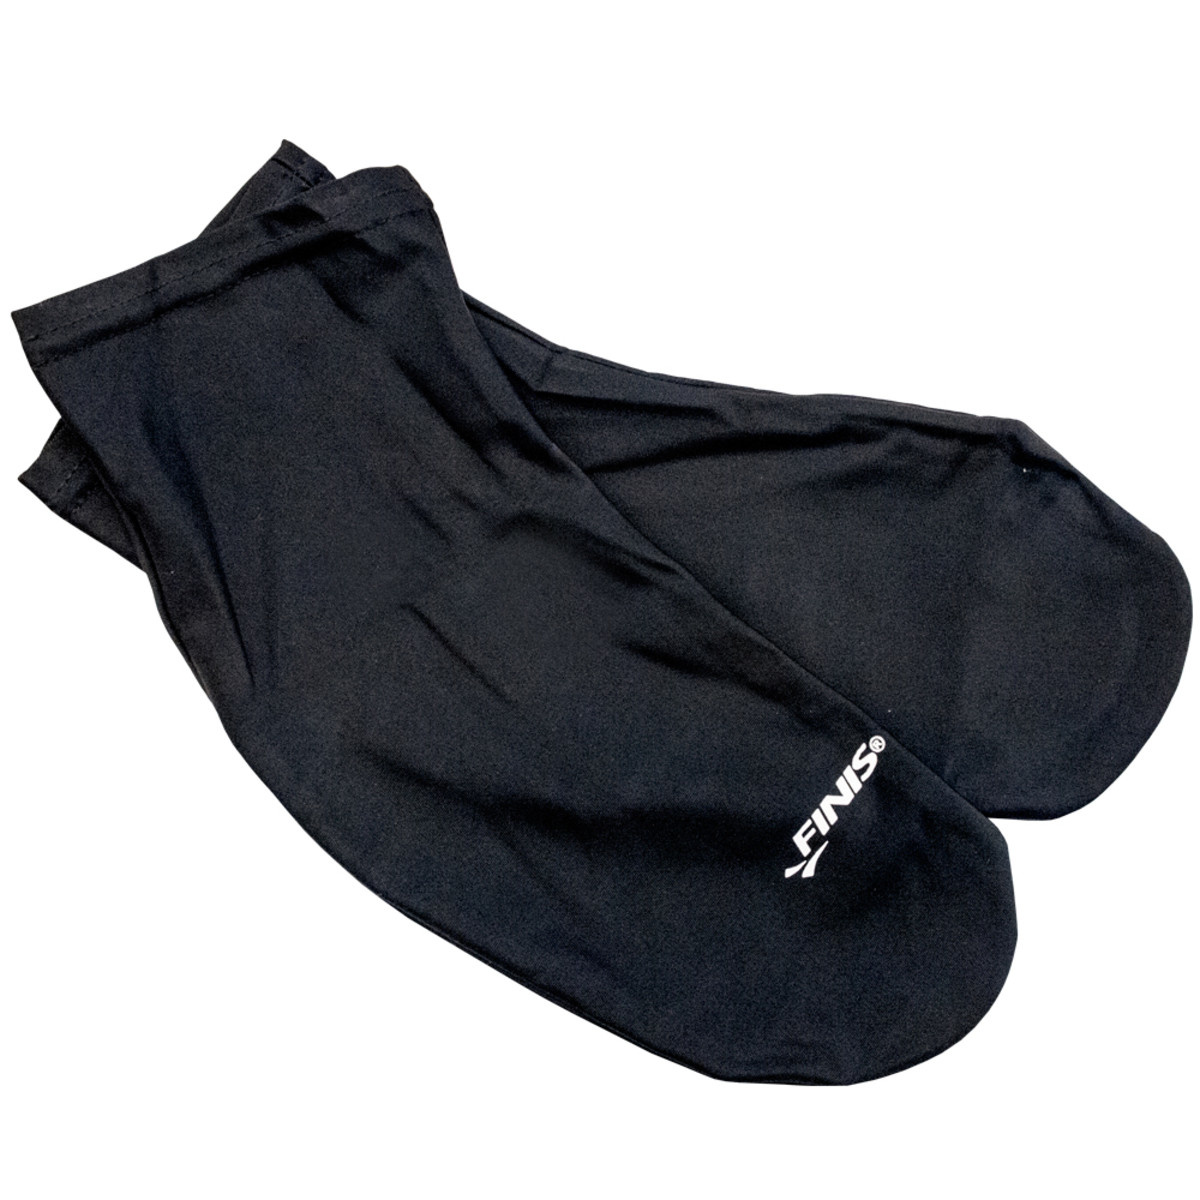 Finis Skin Socks-Black